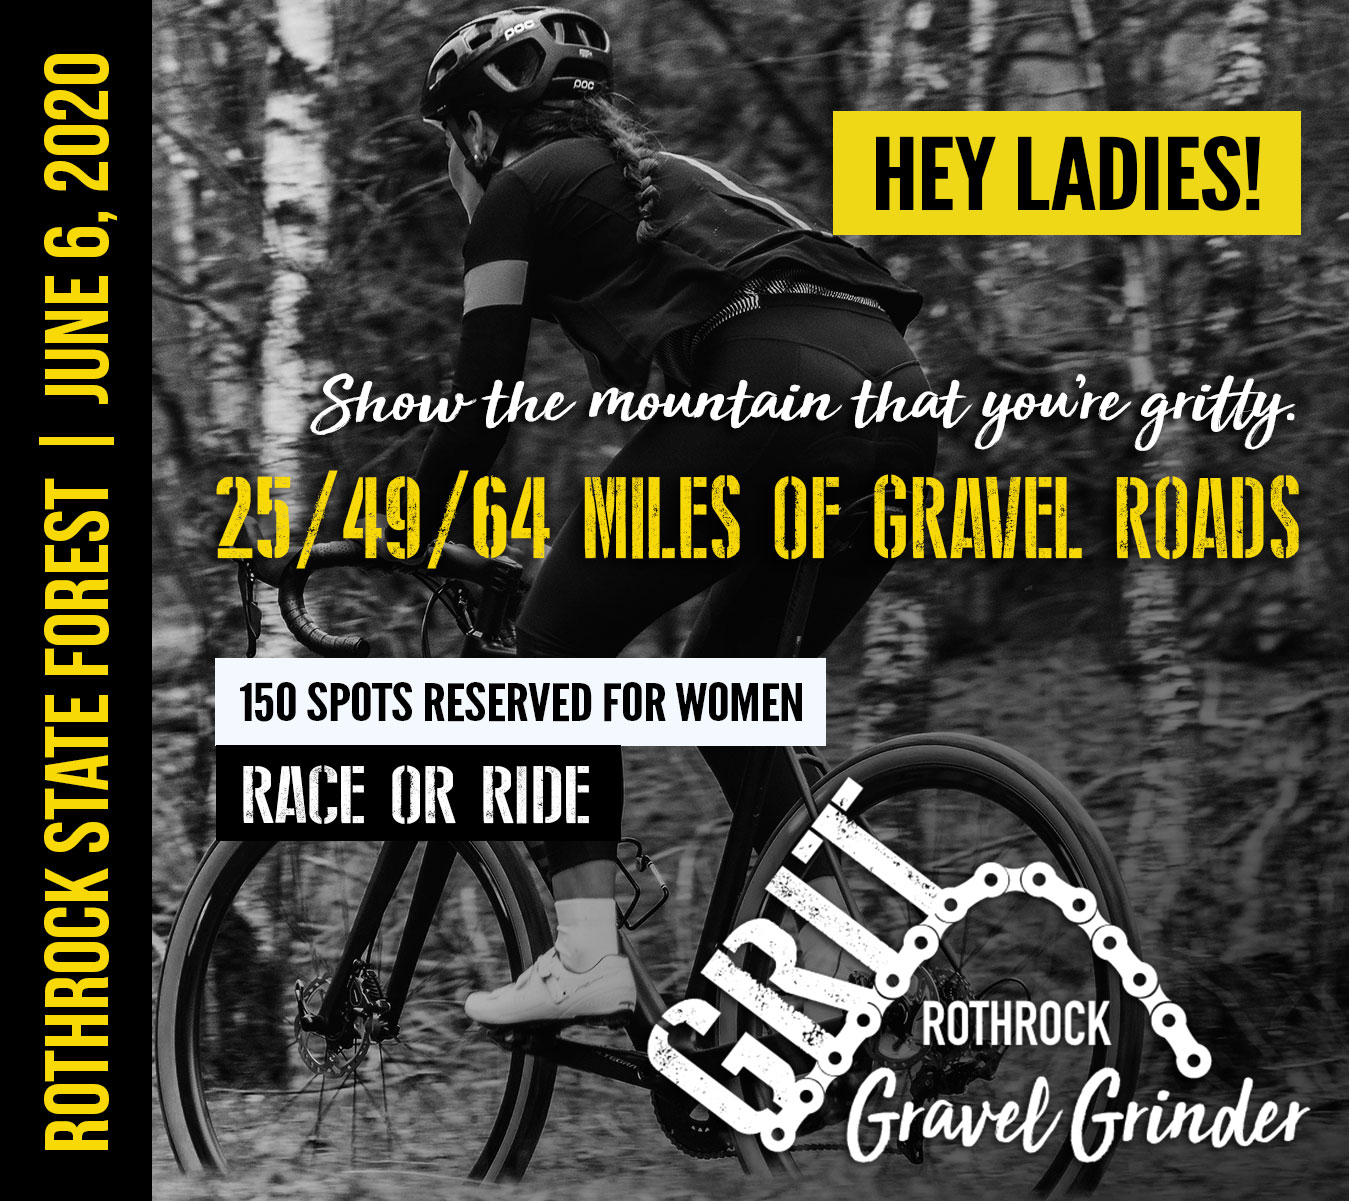 GRIT Ladies Post 2